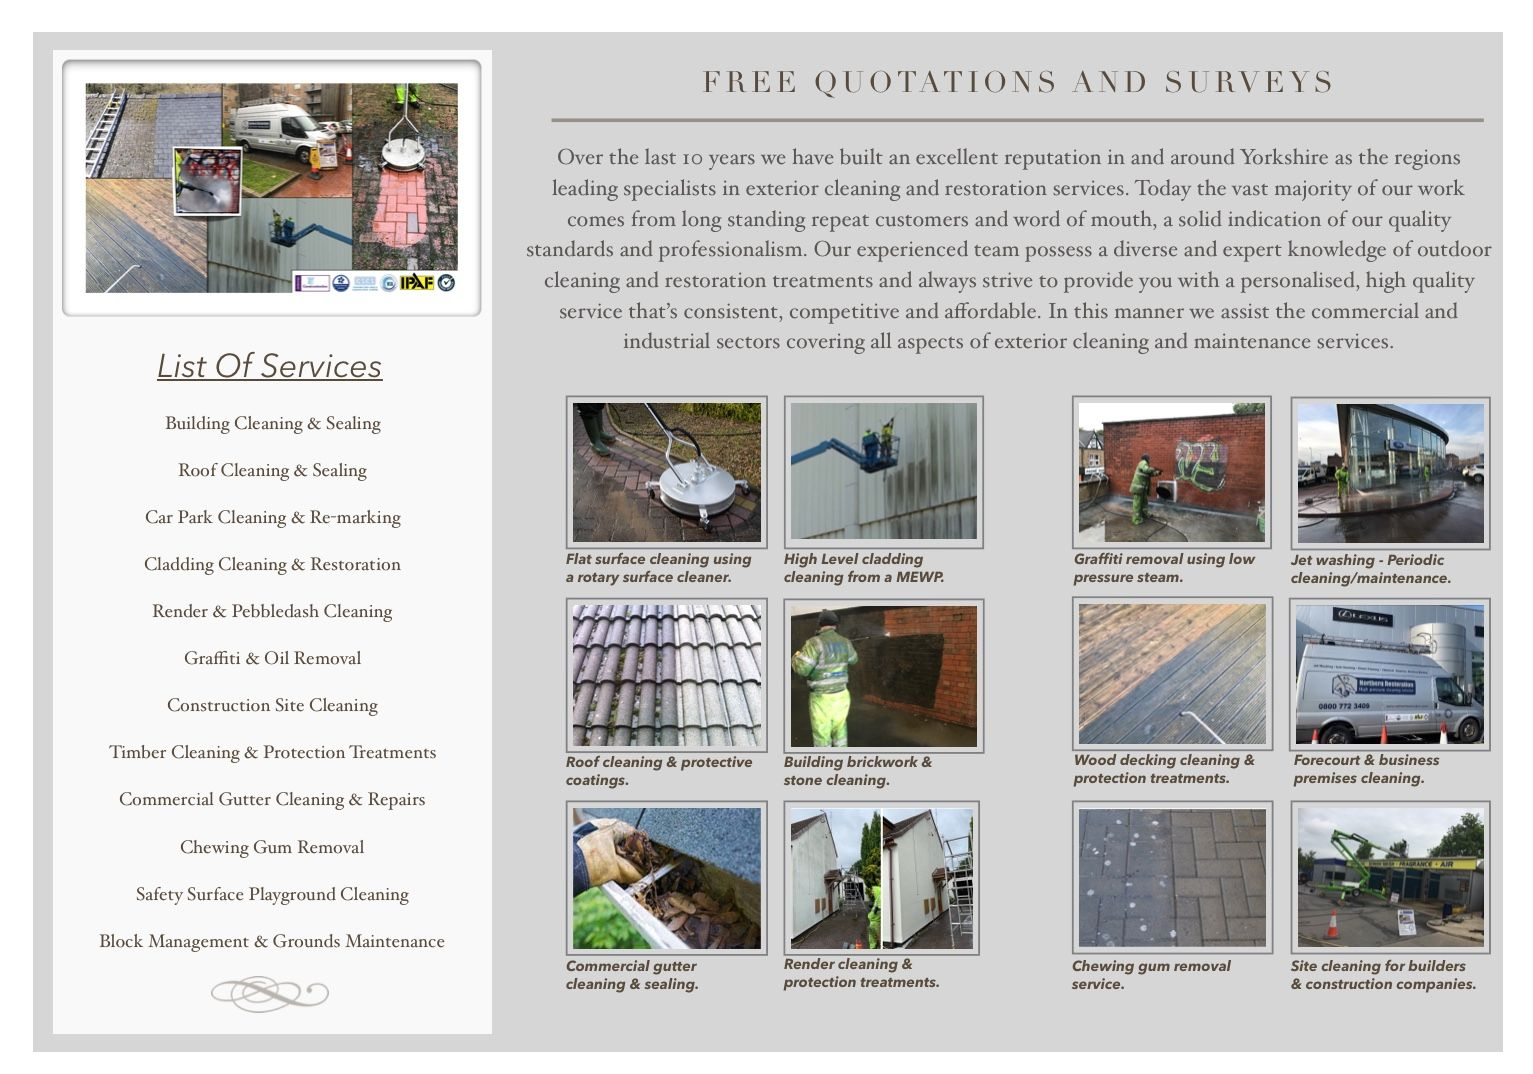 Building Cleaning & Sealing Roof Cleaning & Sealing Car